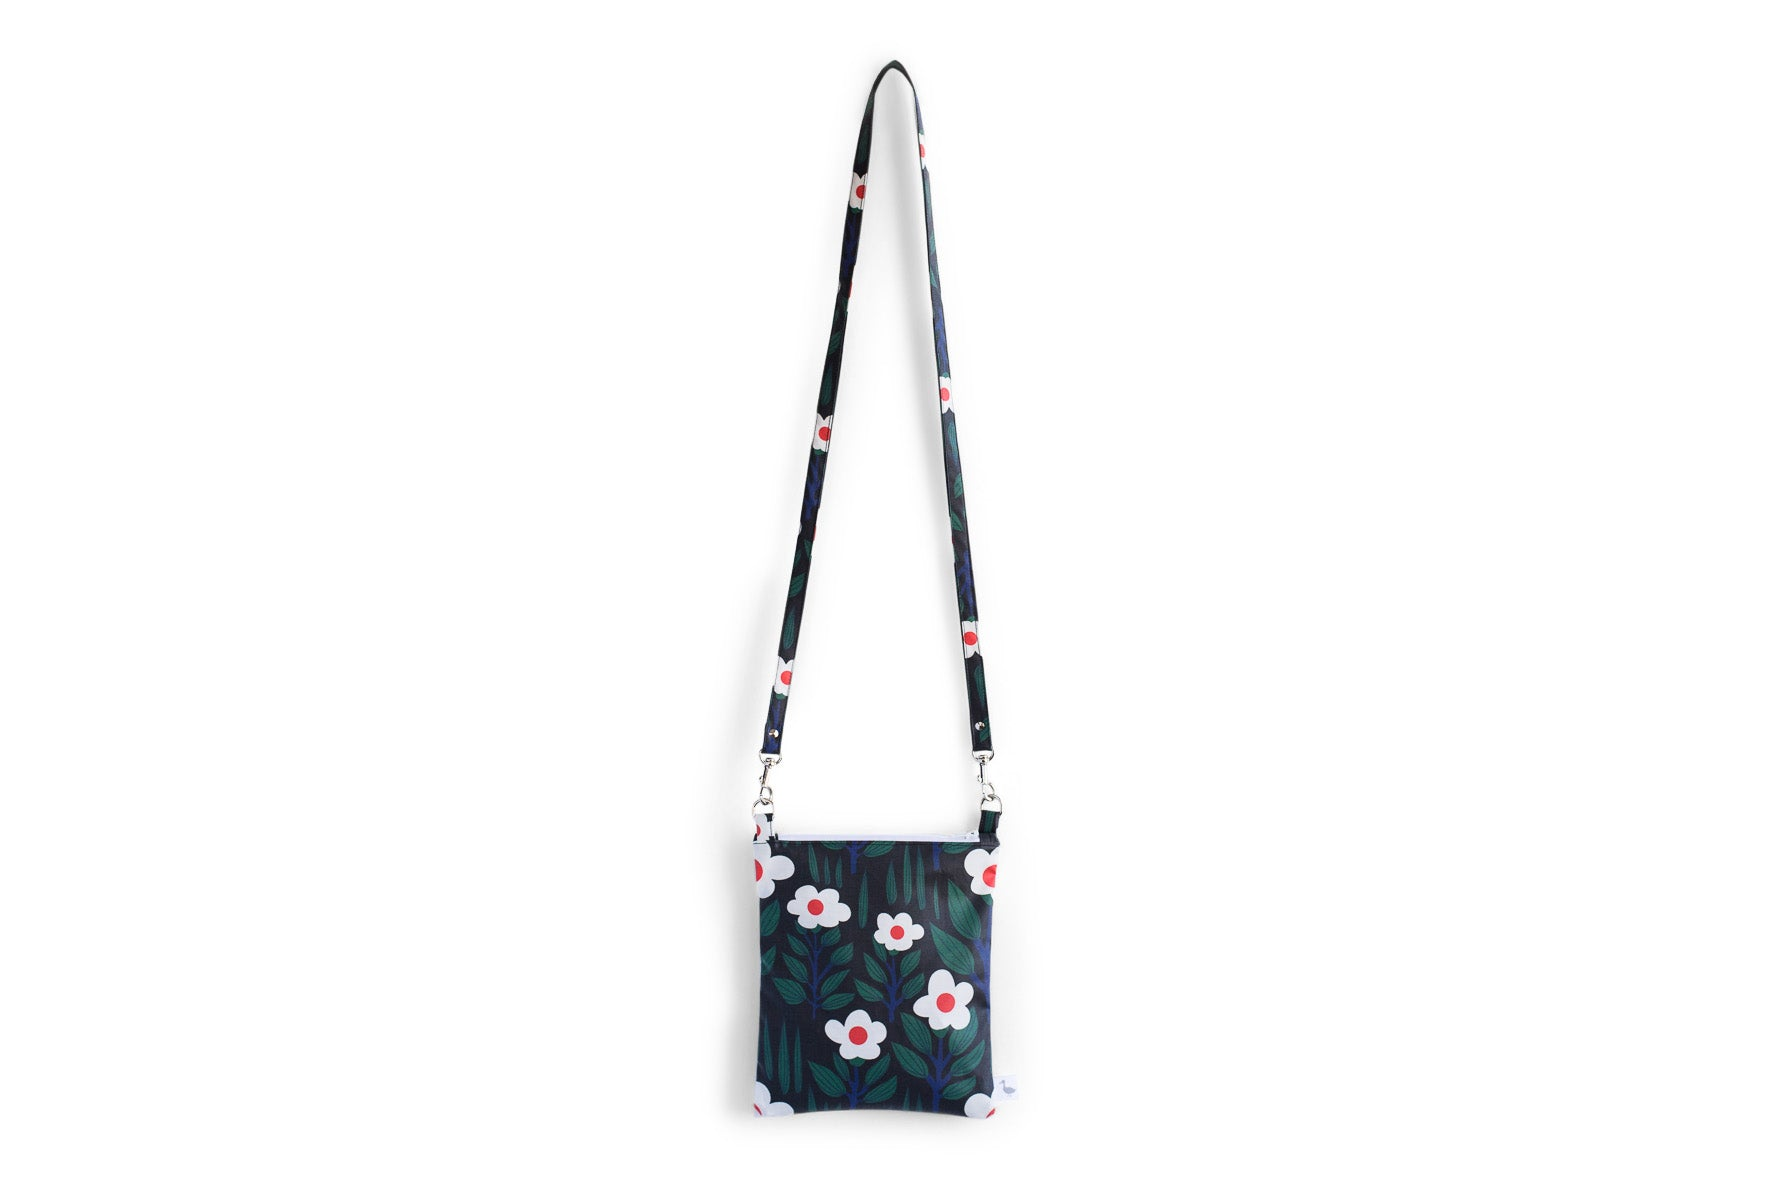 Small Crossbody Purse with Black with White/Orange Flowers Fabric